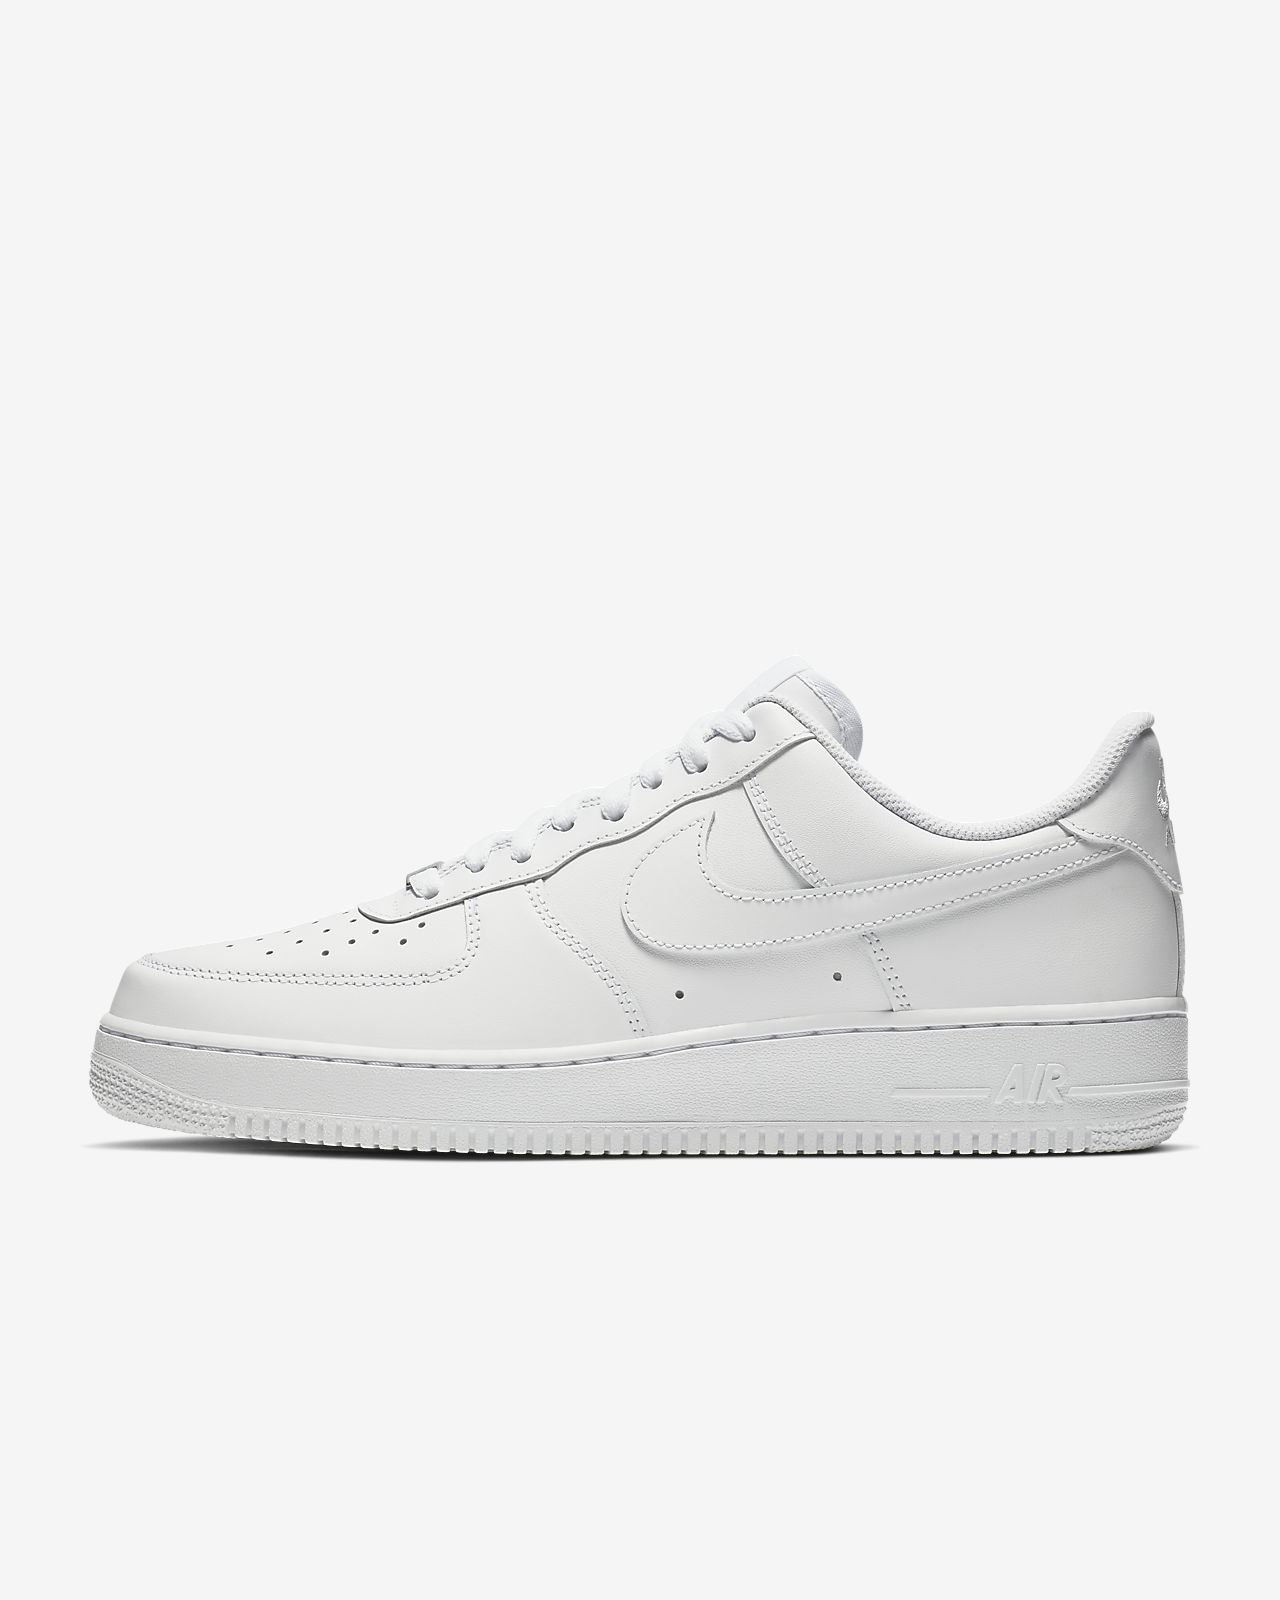 new arrival 2ccc5 34d64 Scarpa Nike Air Force 1 07